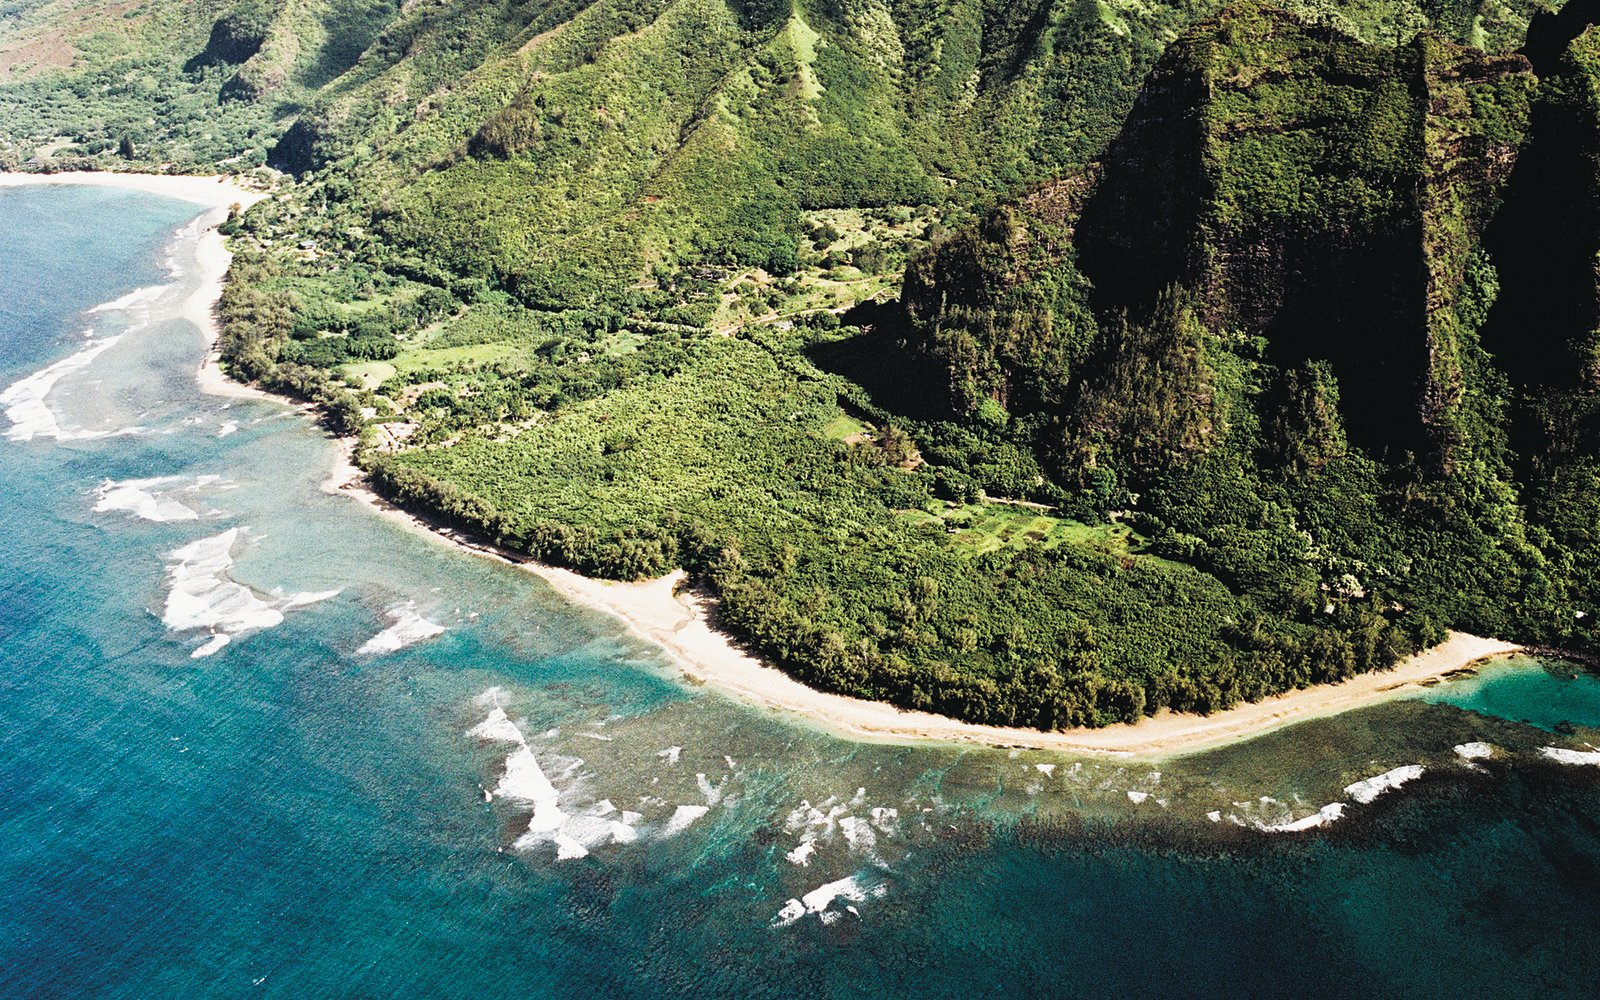 No. 9: Kauai, Hawaii